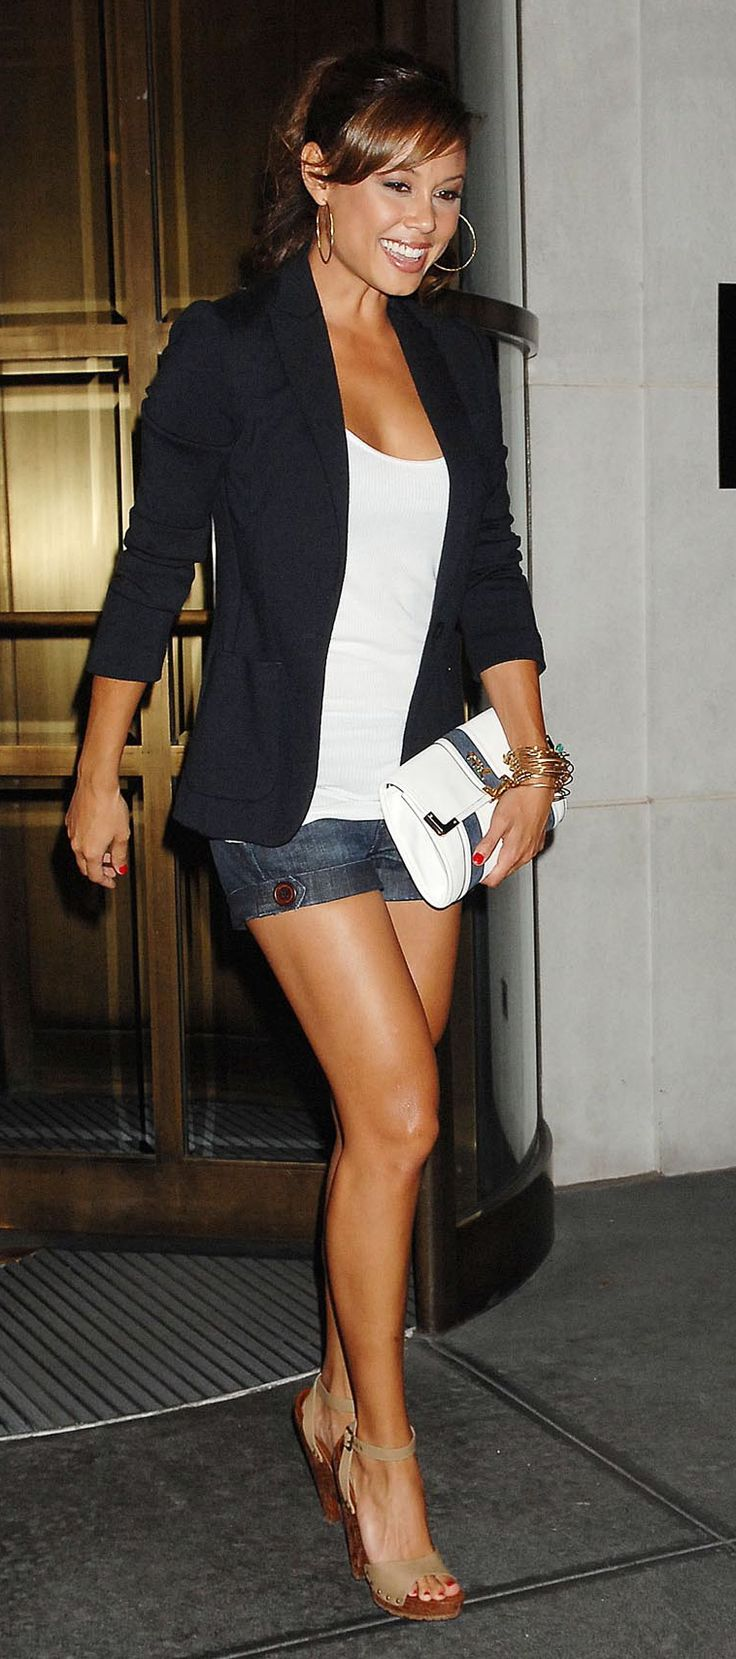 Love these kind of outfits - blazer on top, shorts on bottom.